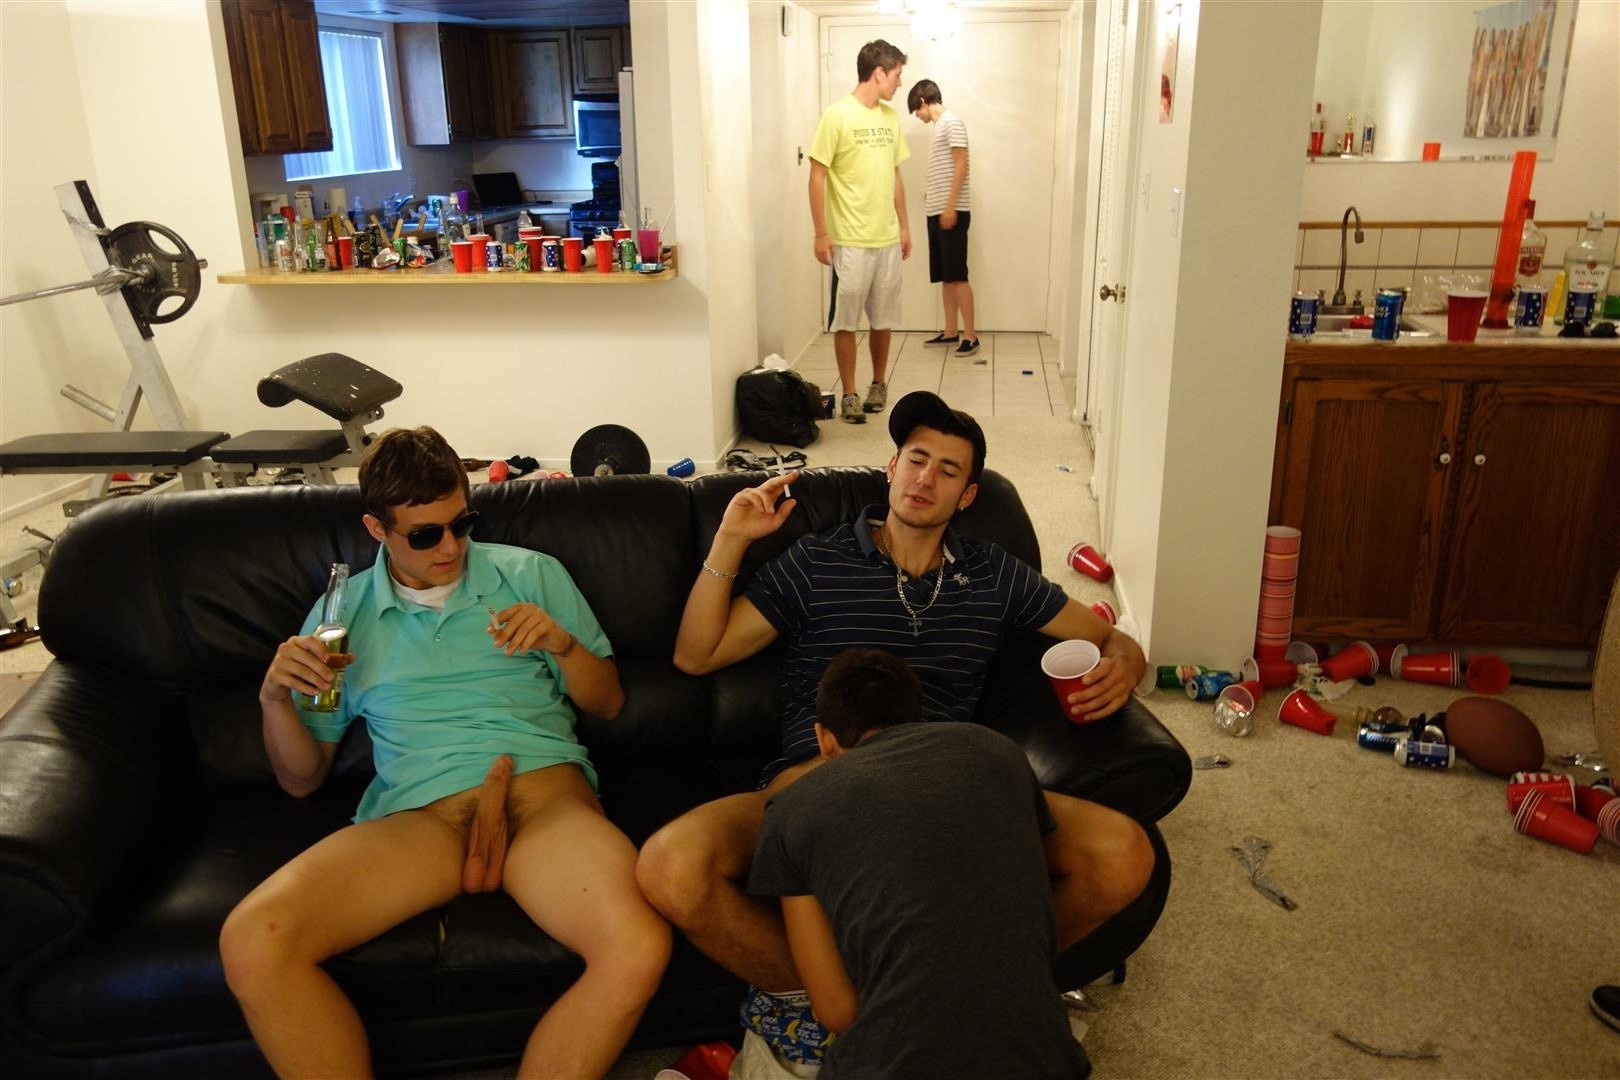 Fraternity-X-Drunk-Frat-Pledge-Gets-Barebacked-While-Passed-Out-Amateur-Gay-Porn-08 Drunk And Passed Out Frat Pledge Gets Fucked Bareback